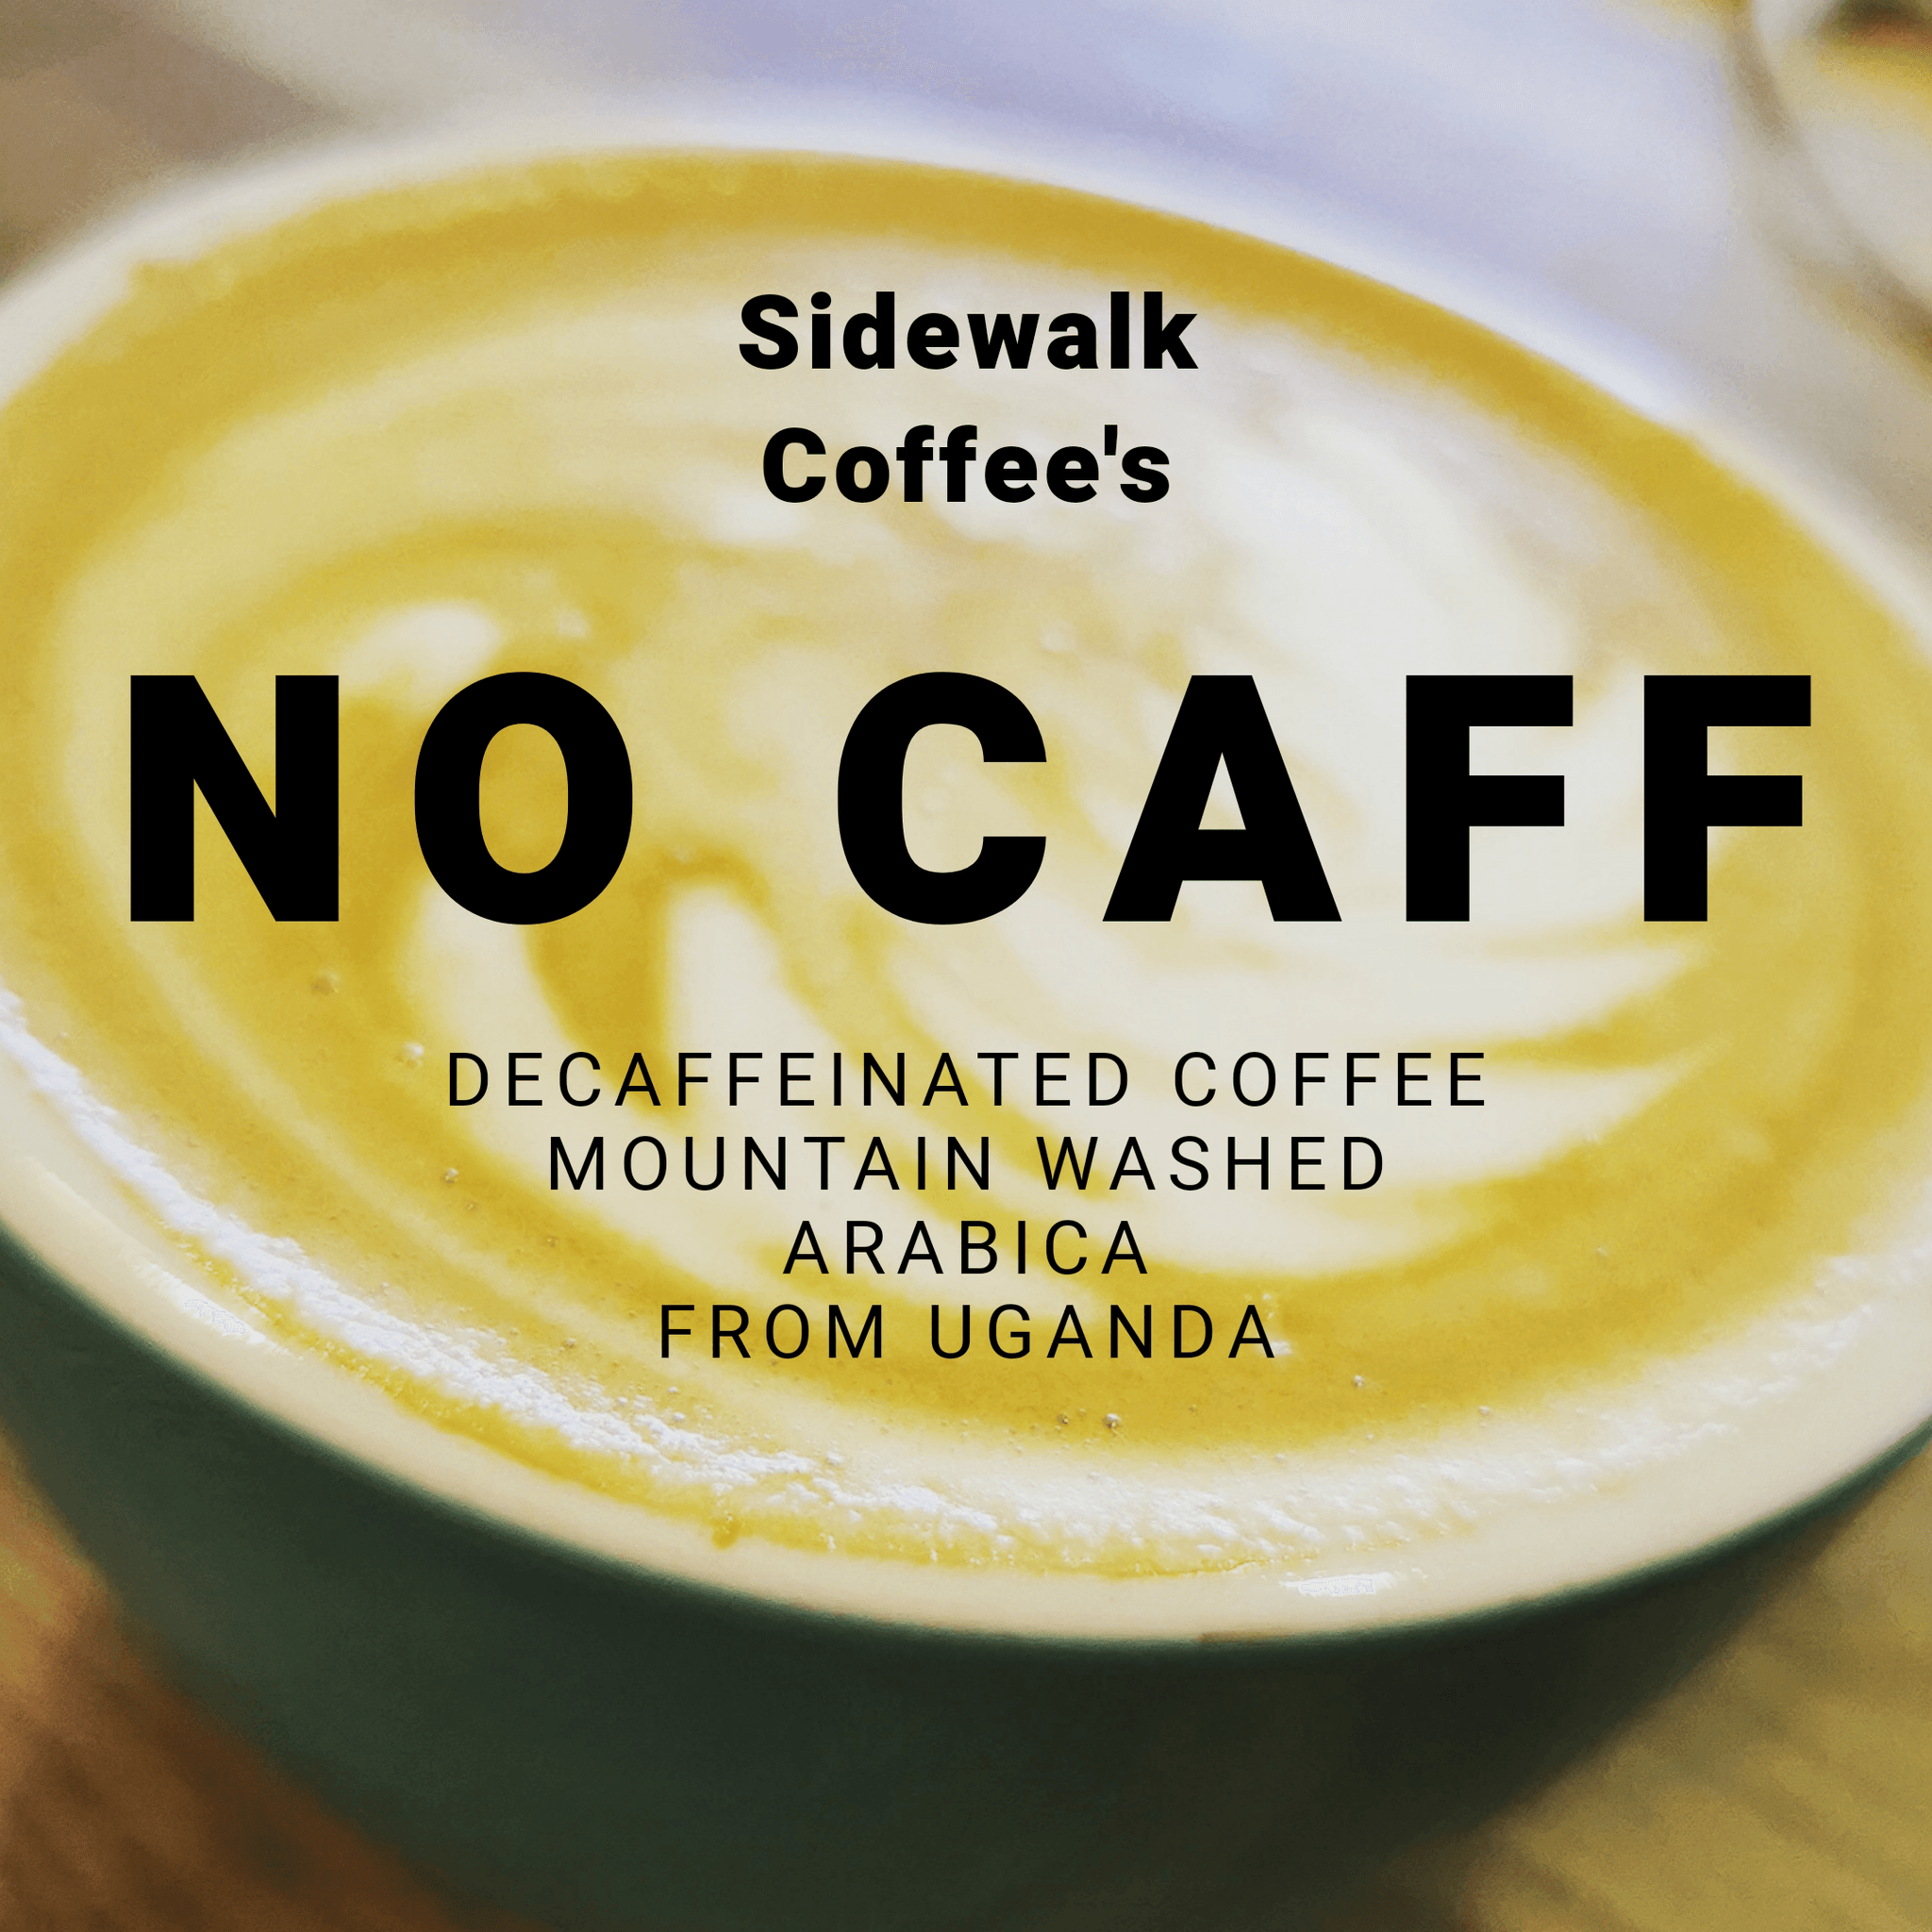 No Caff - Sidewalk Decaffeinated Coffee